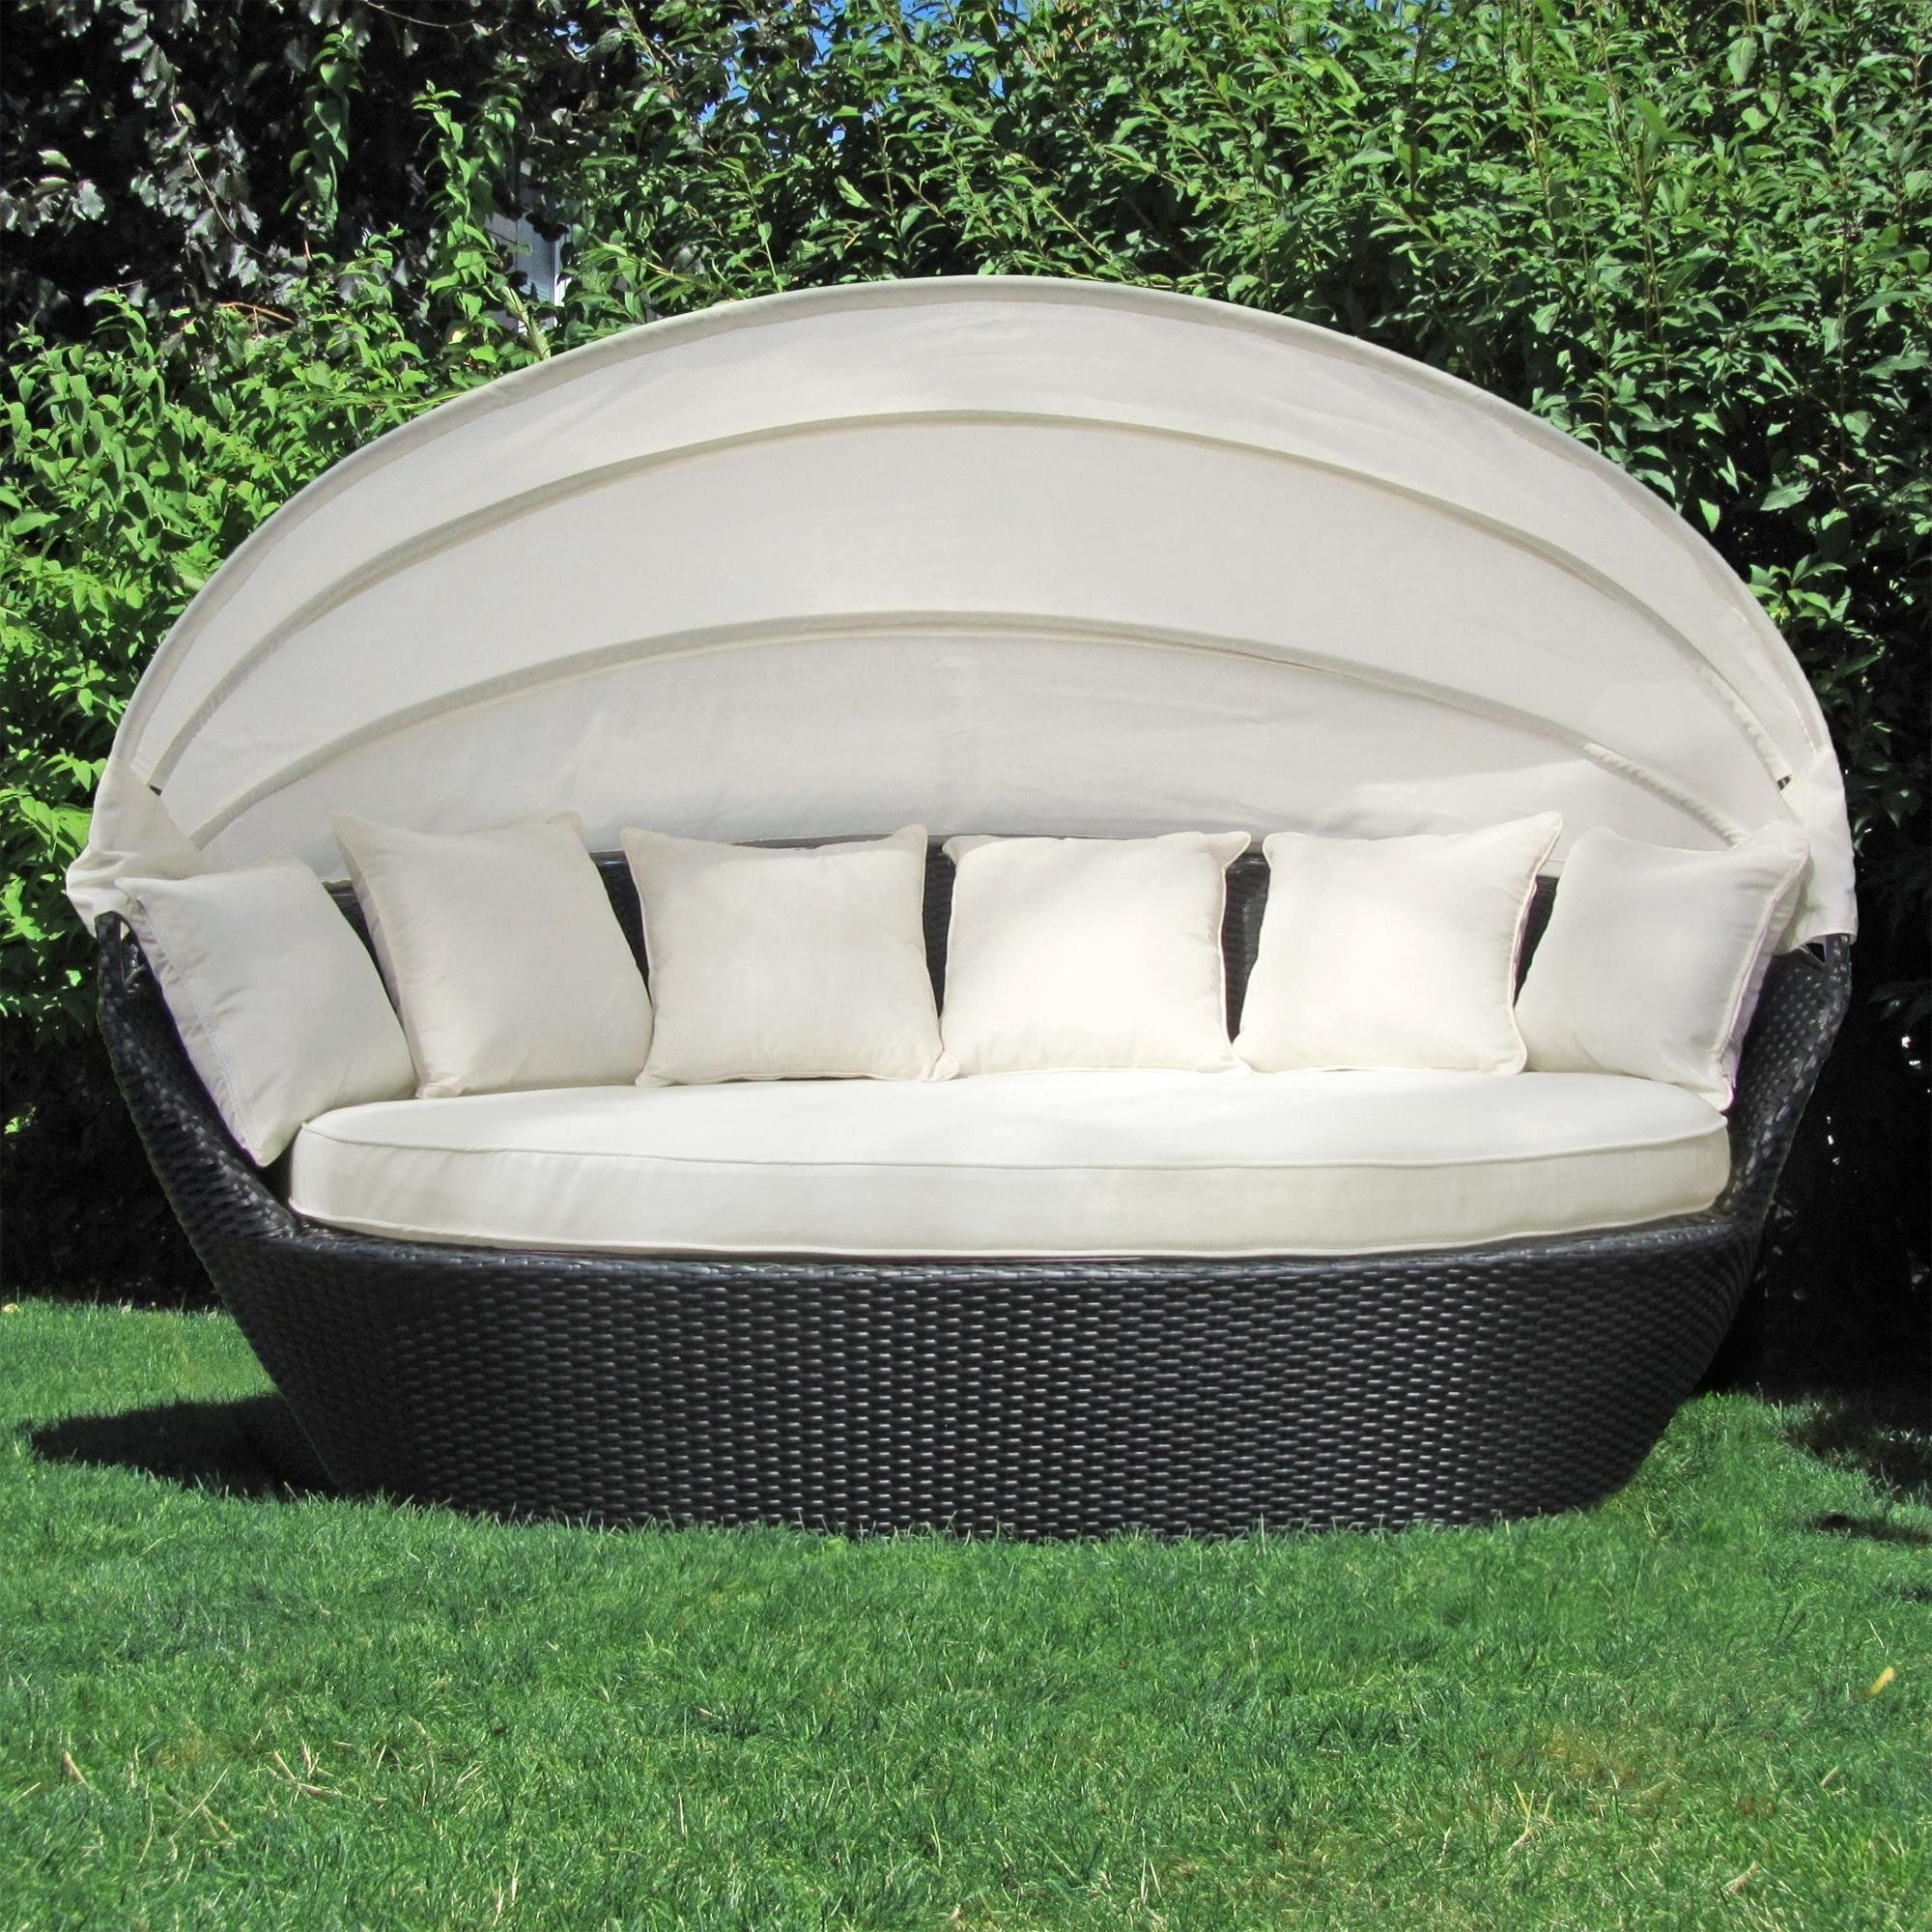 Sonneninsel, Polyrattan Garten Lounge, Chill Out Sofa Mit Baldachin  (200x120x140 Cm)